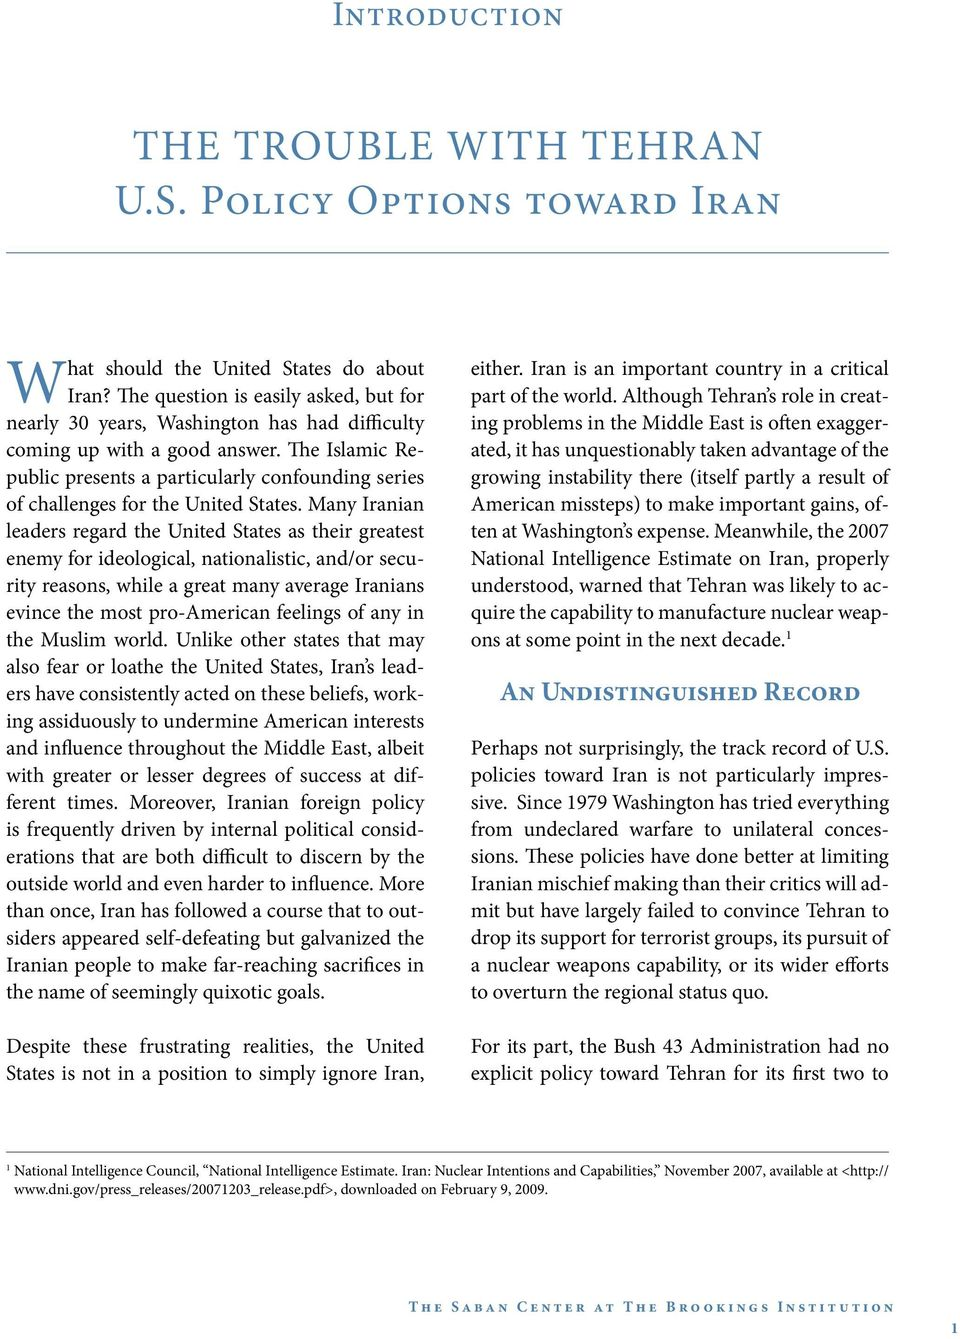 The Islamic Republic presents a particularly confounding series of challenges for the United States.